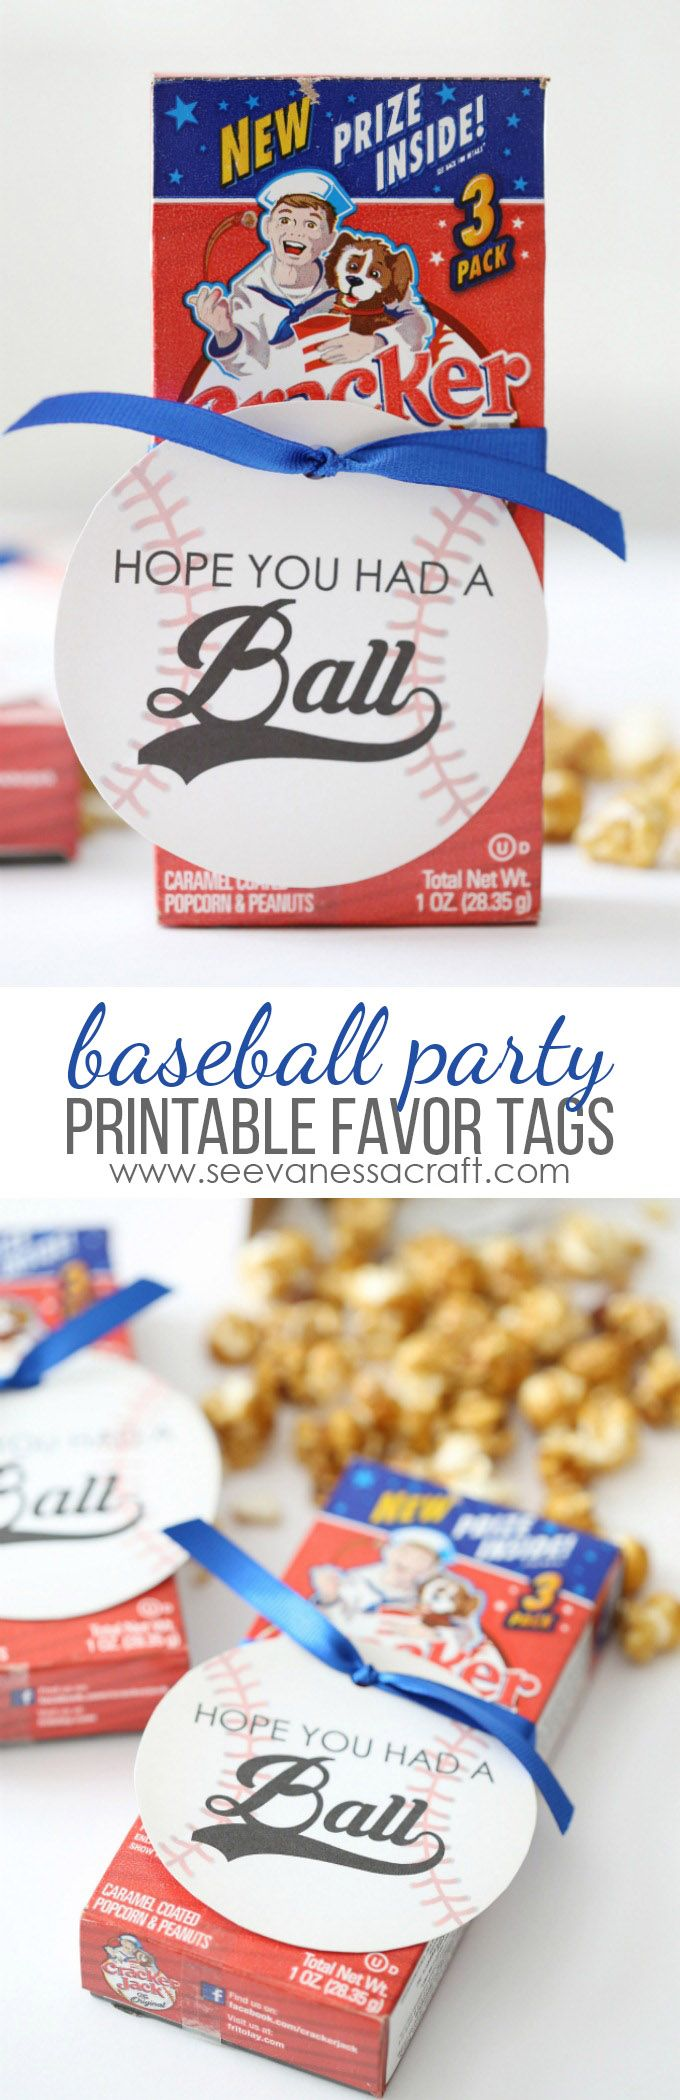 Free Printable Baseball Party Favor Tags - tie them on a box of cracker jacks or peanuts!